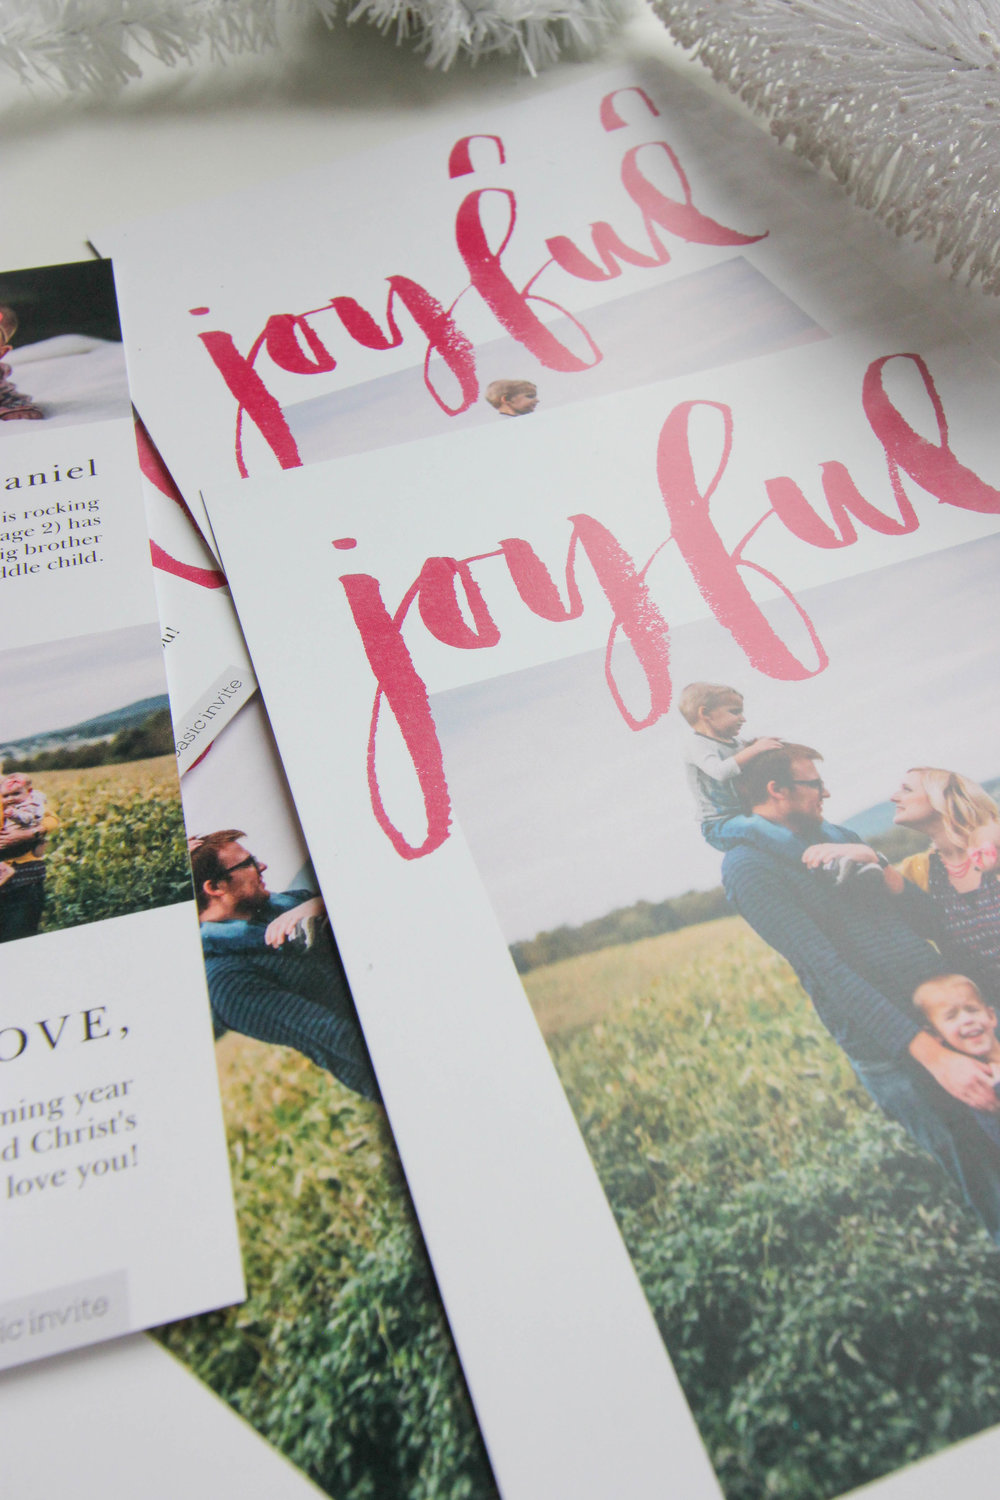 Beautiful, custom holiday cards created in under 30 minutes! #custom #christmascards #affordable #christmas #BasicInvite